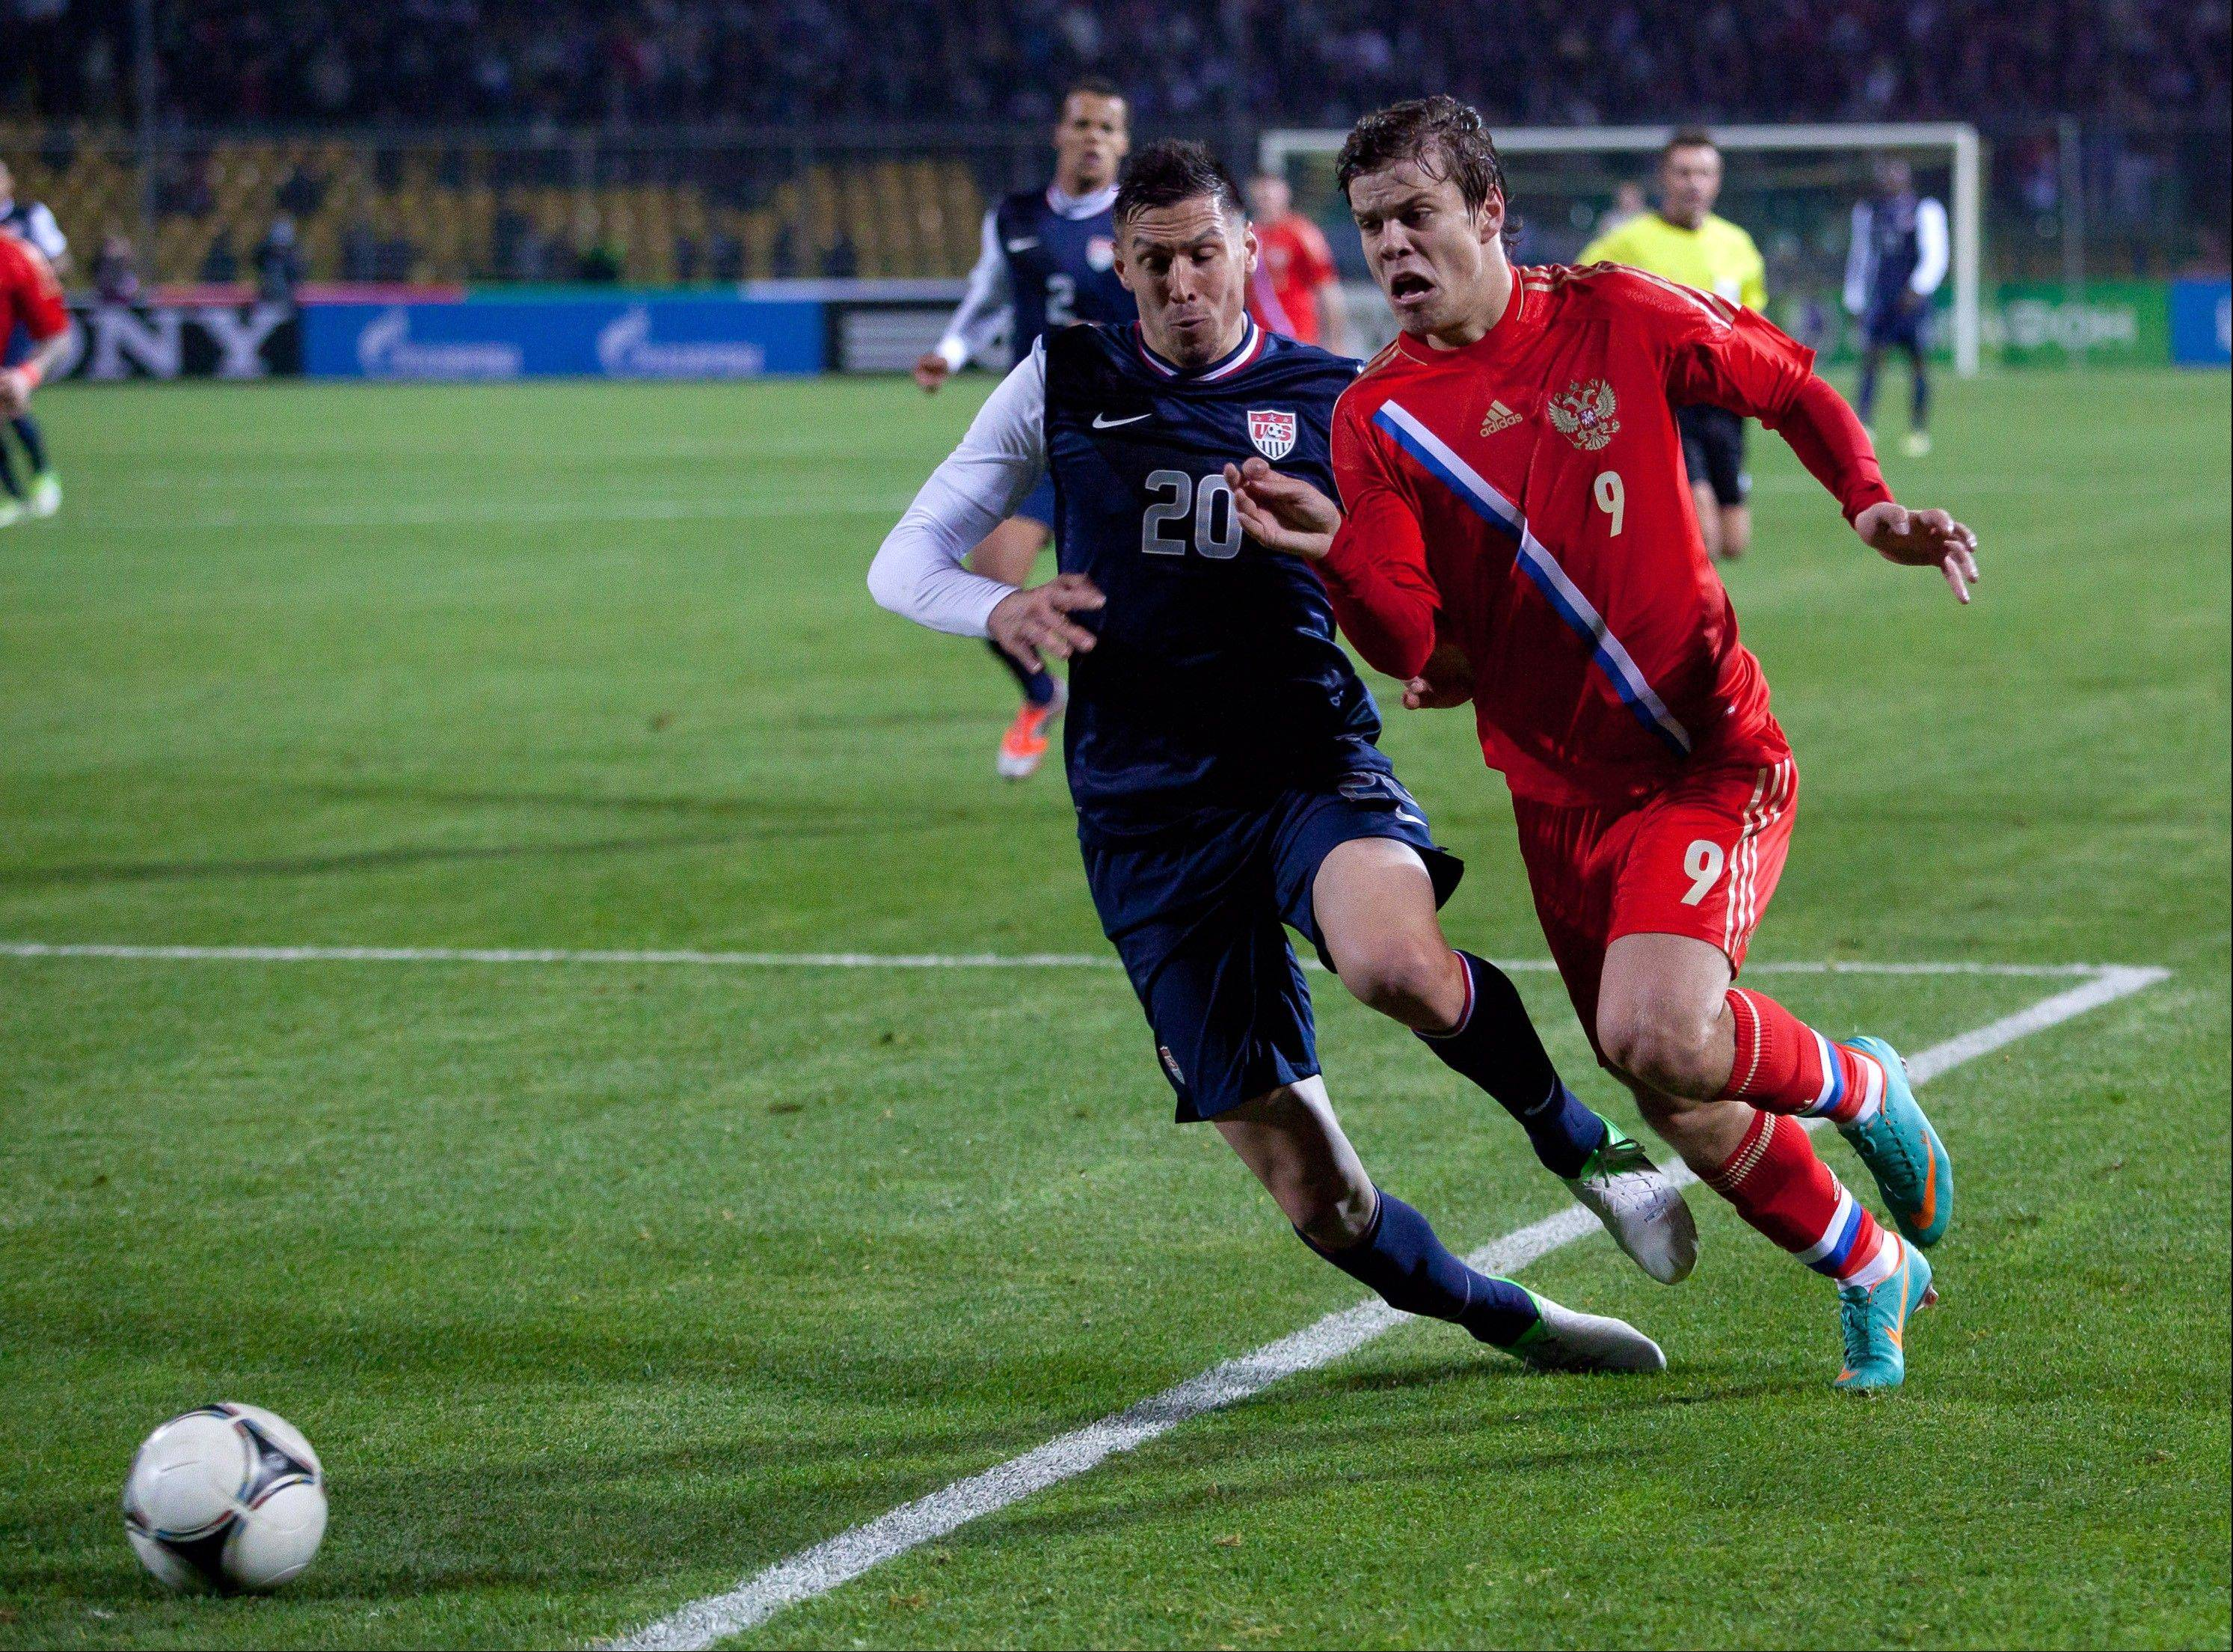 Alexander Kokorin, of Russia, right, and Geoff Cameron, of the United States, struggle for the ball Wednesday during a friendly between Russia and United States, in Krasnodar, Russia. The game ended in a 2-2 draw.